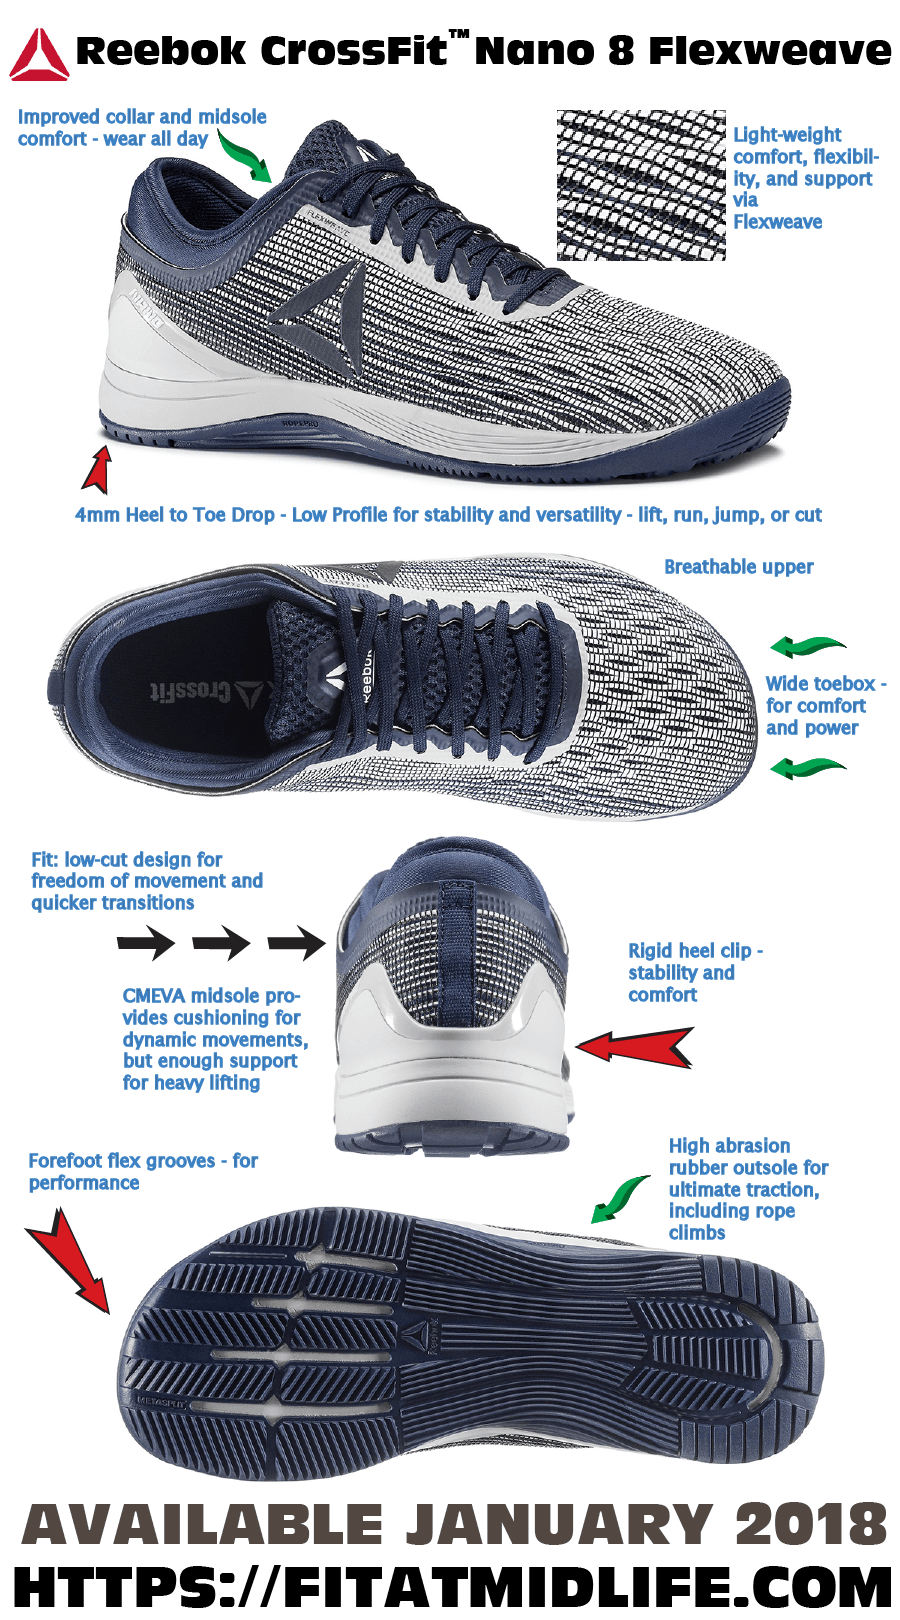 c4a330785b7 Reebok CrossFit Nano 8 Flexweave - Infographic - find out all about this  great cross training